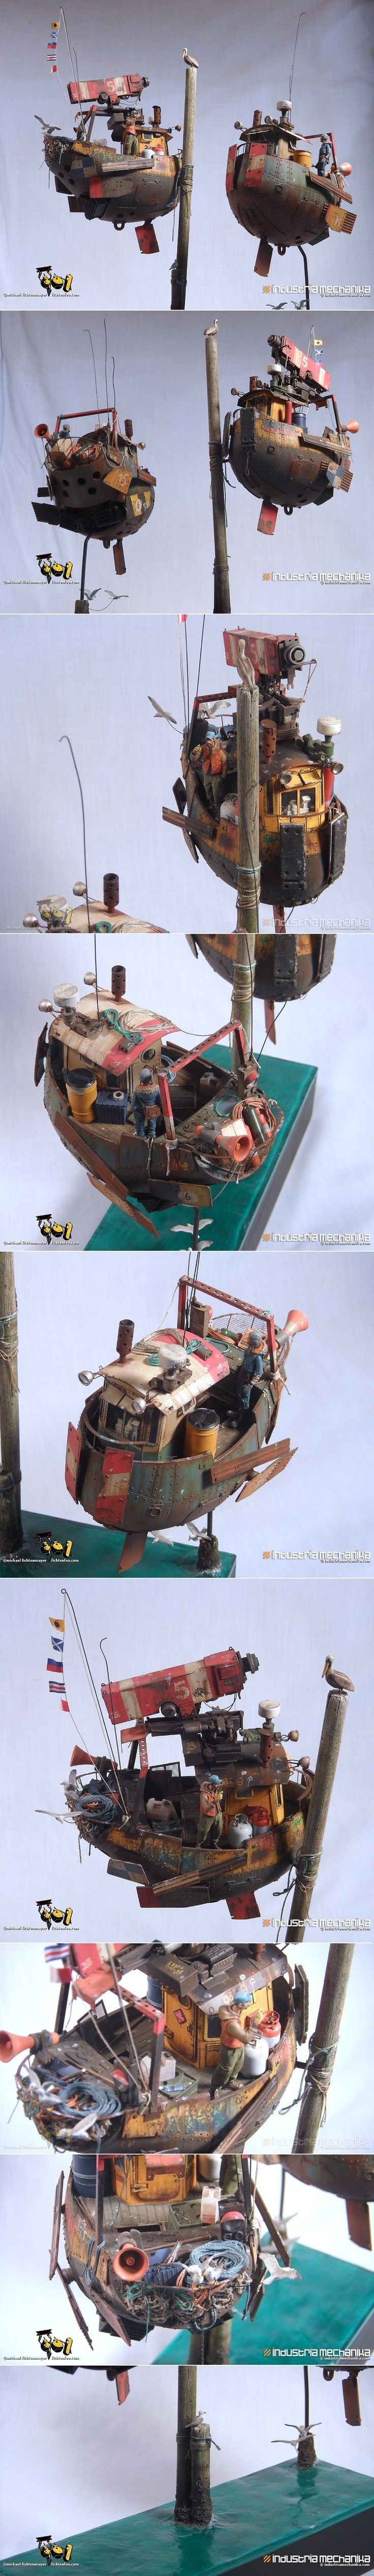 Ian McQue Waldo kit 1/35 scale. Resin, photoetch, laser-cut wood and plastic… http://fichtenfoo.net/blog/completed-ian-mcque-waldos/